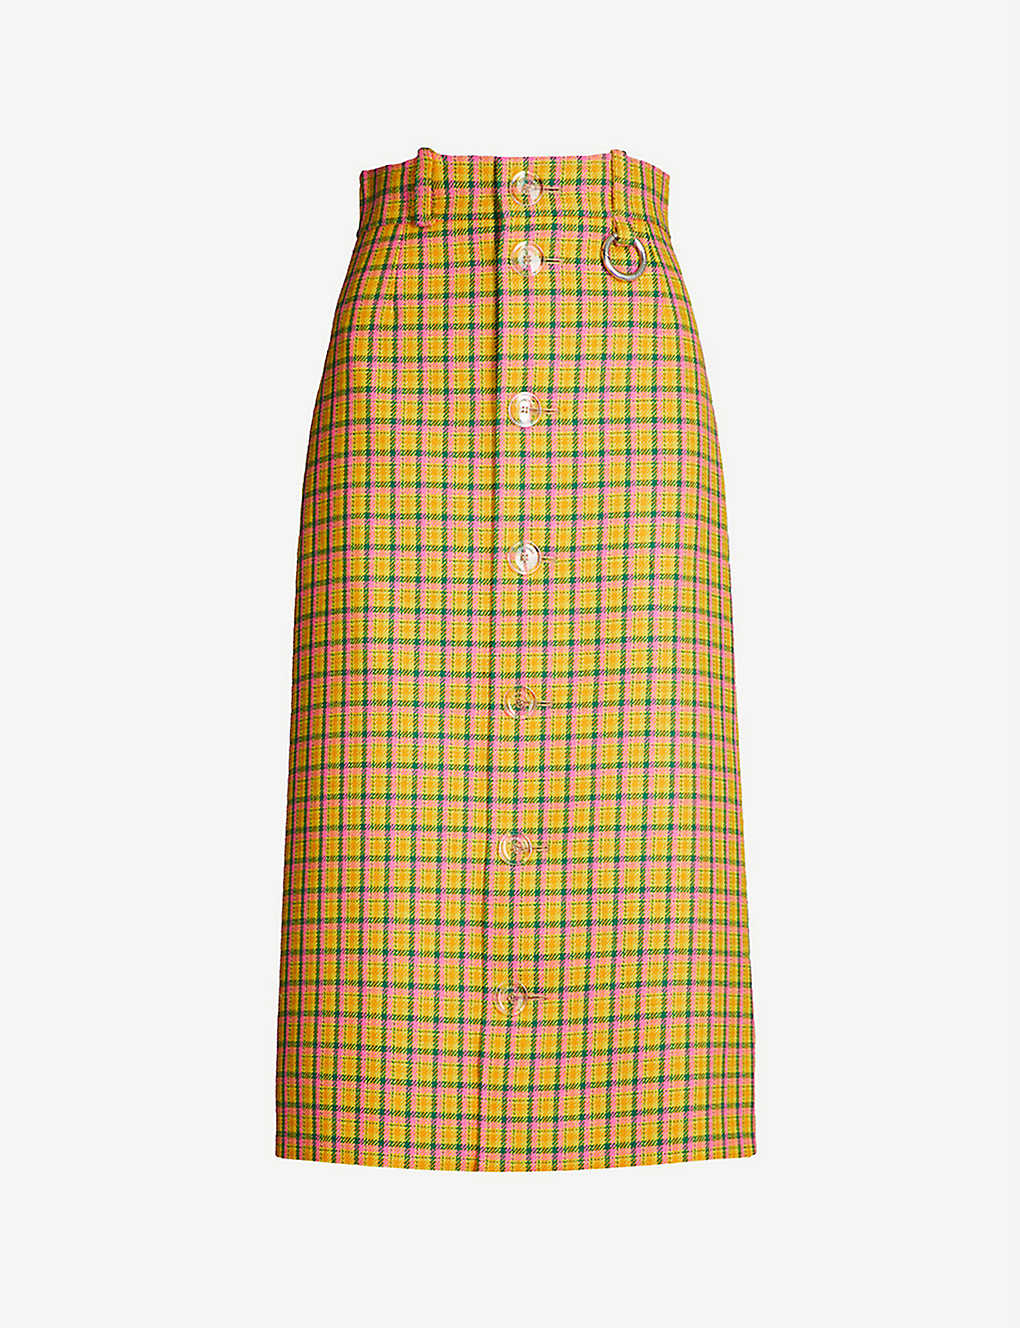 449be72e06 BALENCIAGA - Checked wool pencil skirt | Selfridges.com